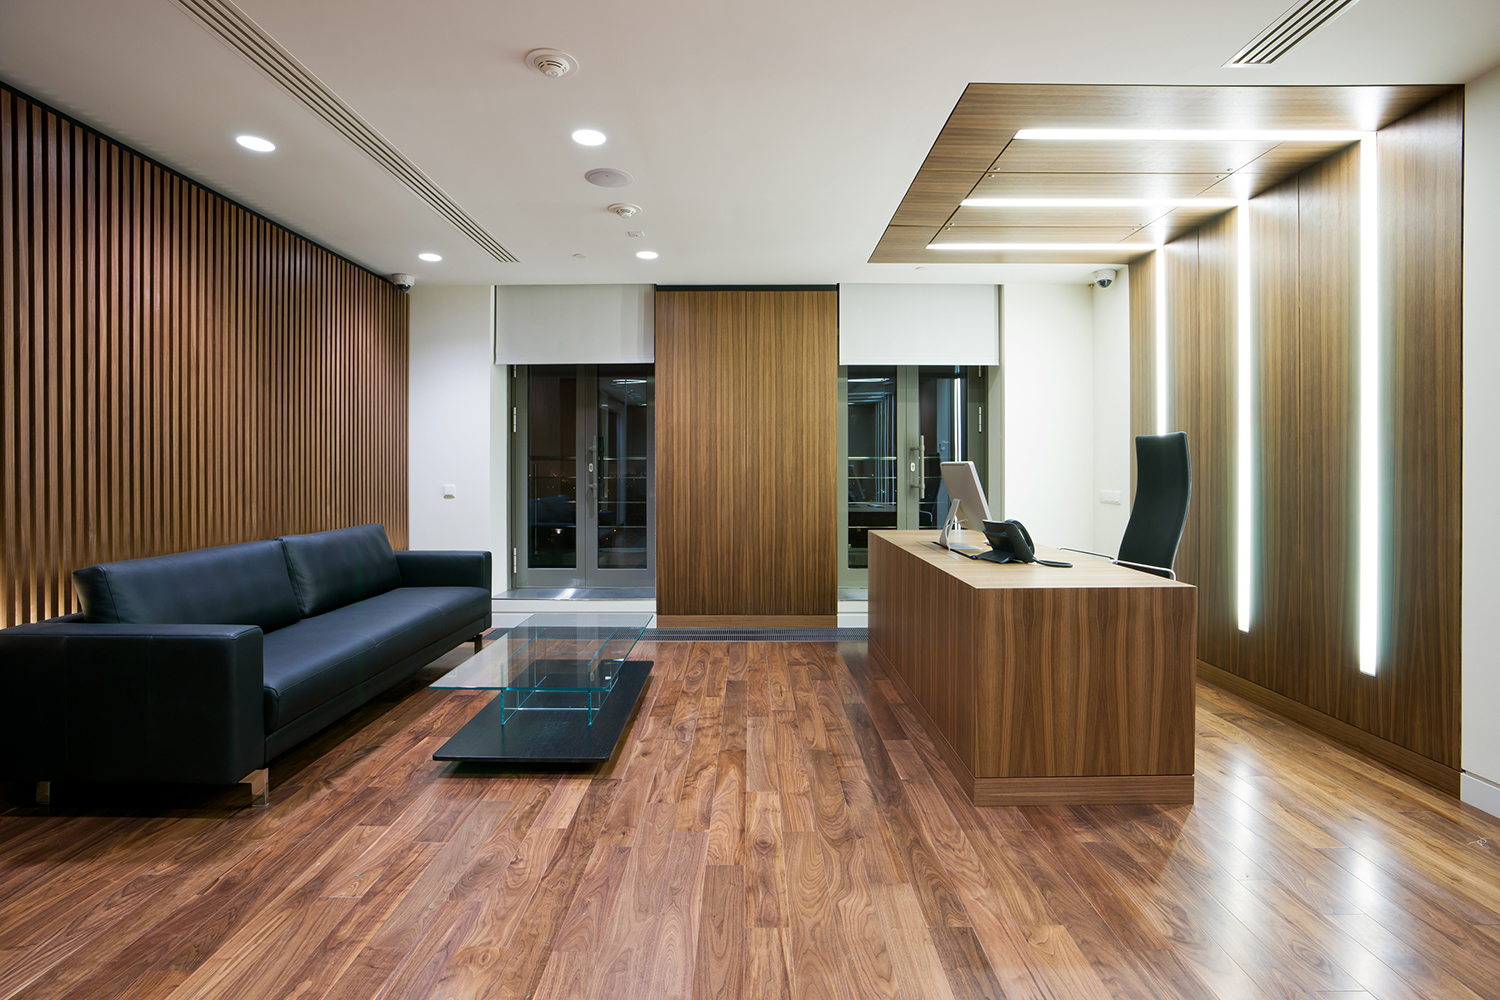 Modern Architecture Office Interior: Office Renovation Malaysia